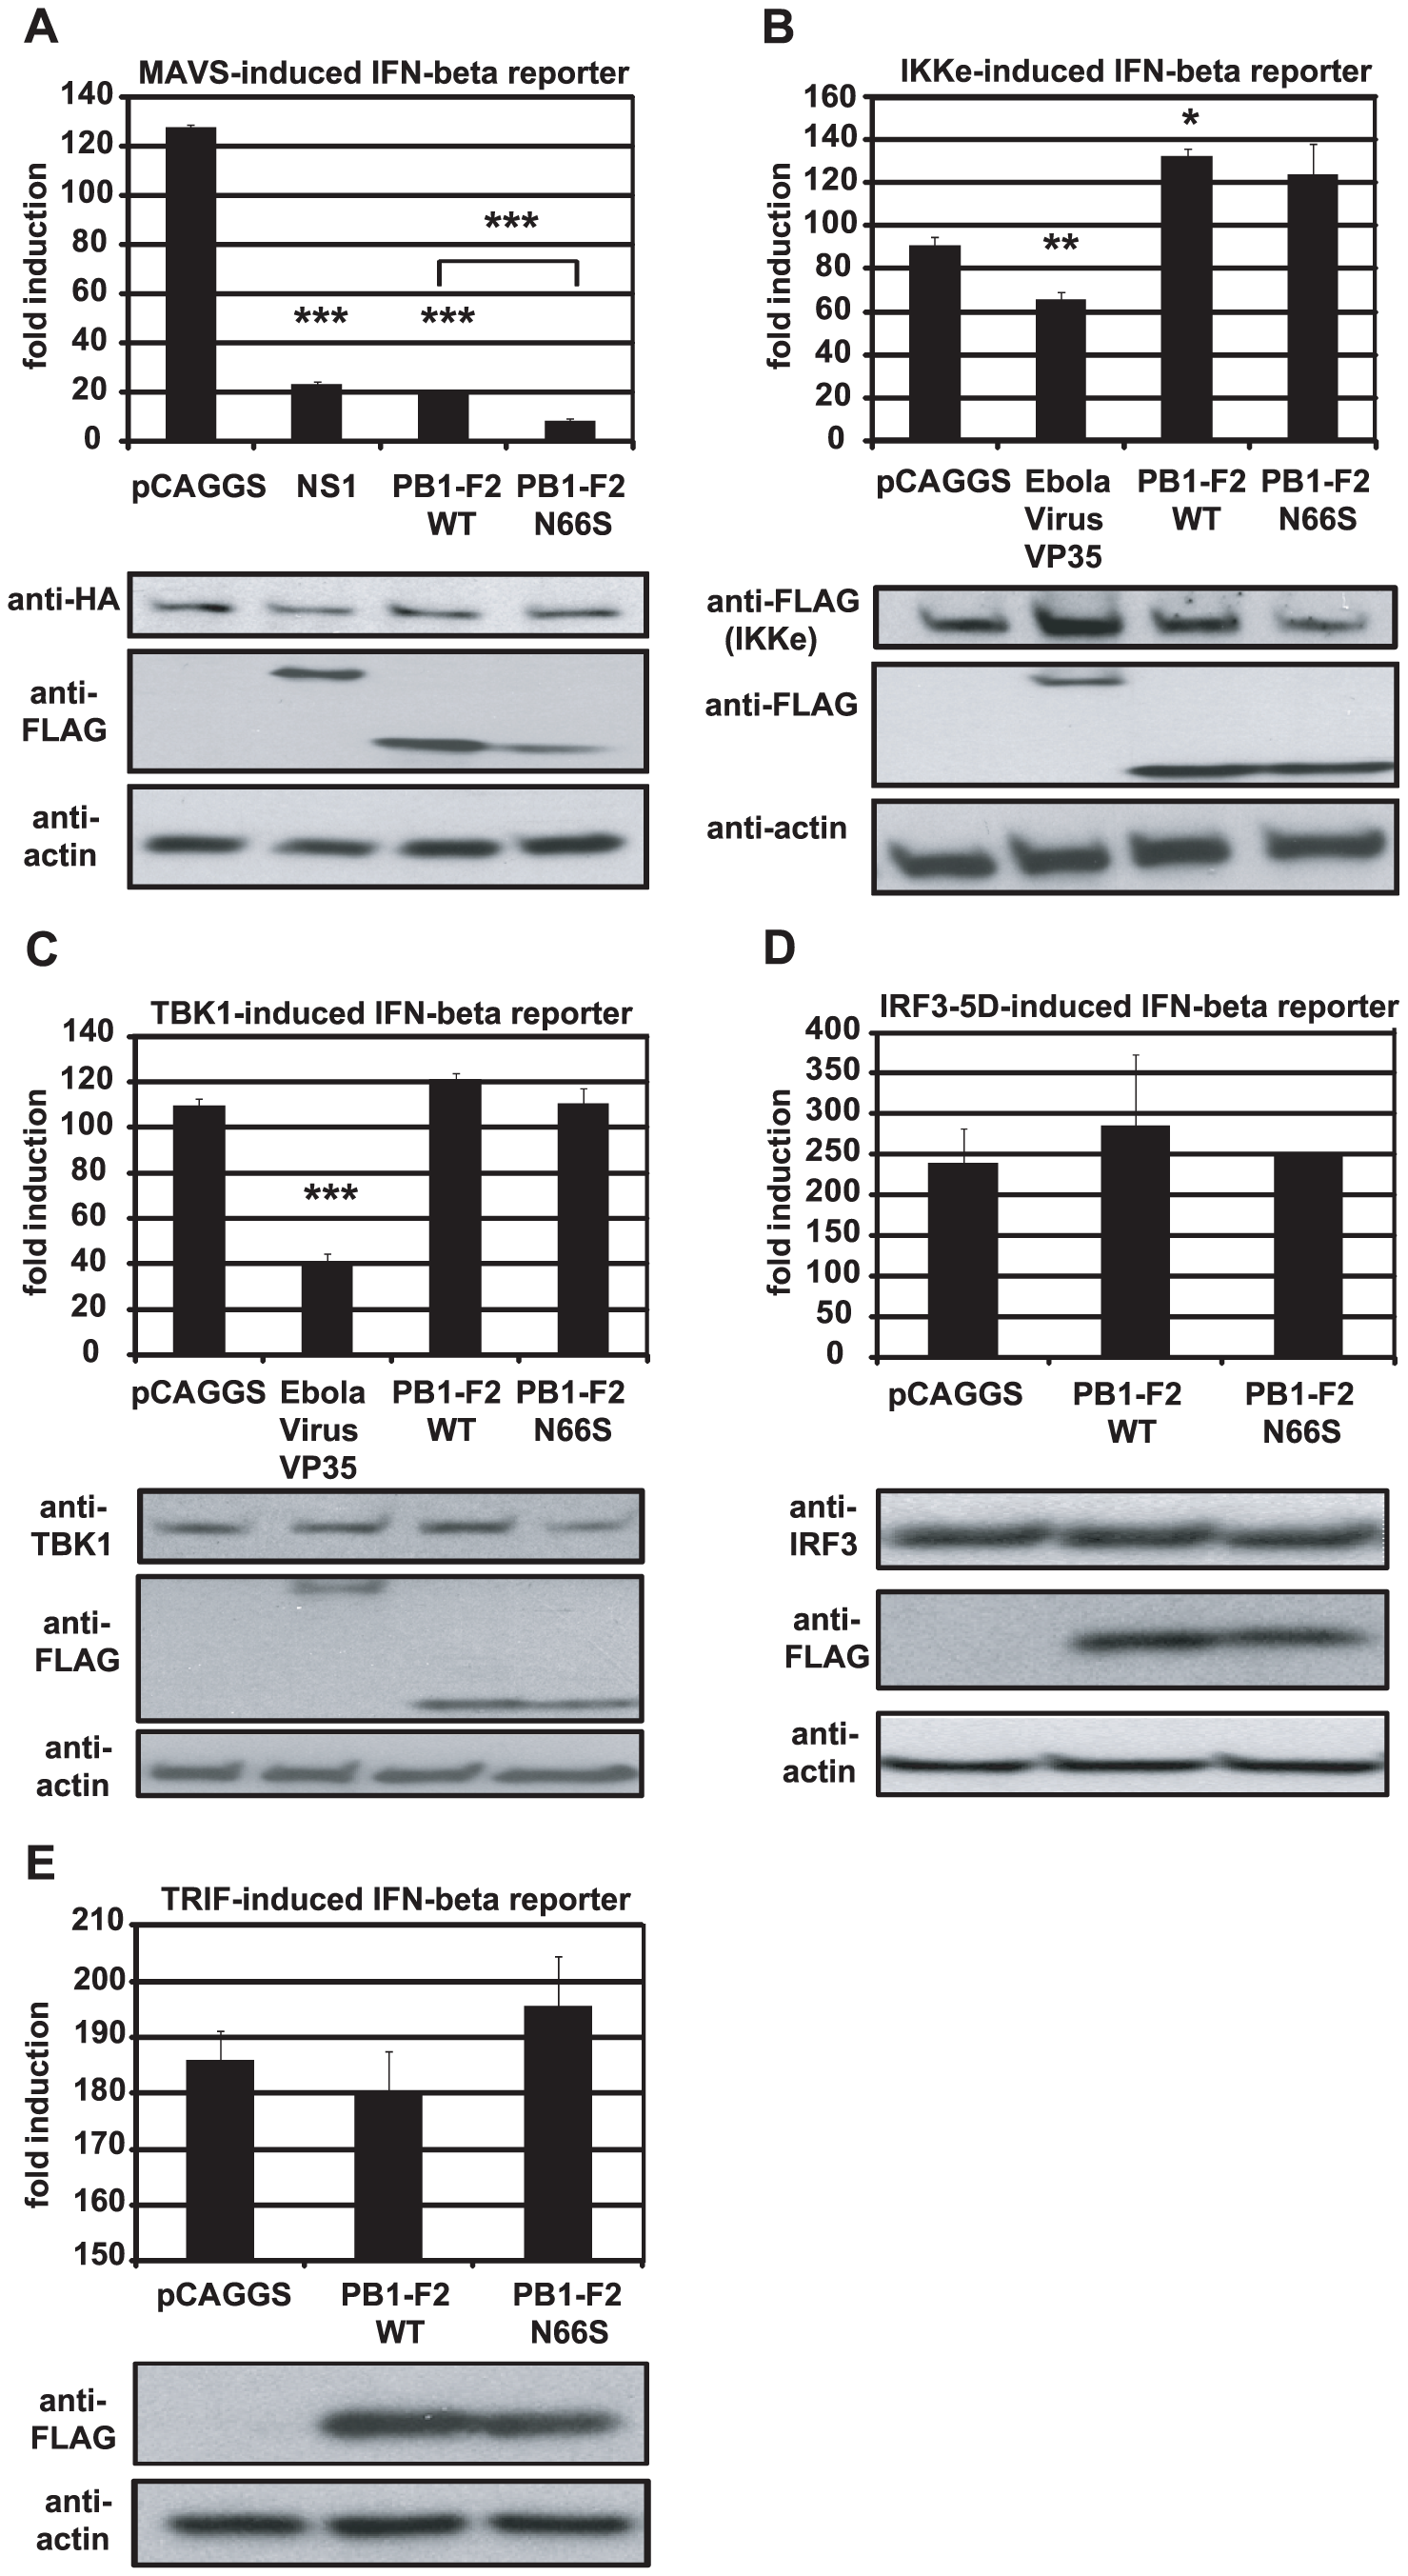 PB1-F2 inhibits IFN induction at the level of MAVS.